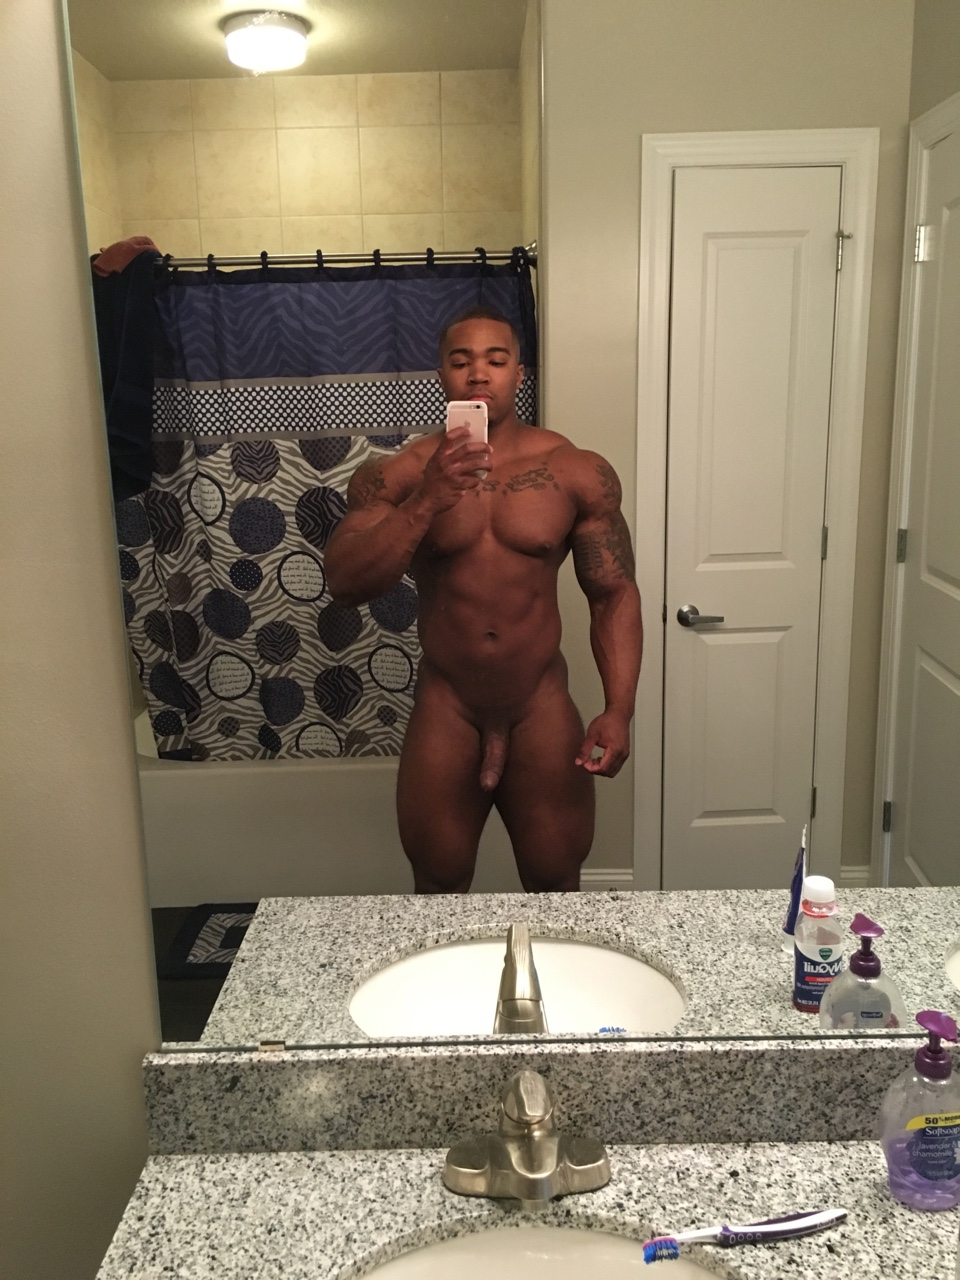 Nude Black Men Selfies - Sex Group Video Free-7990